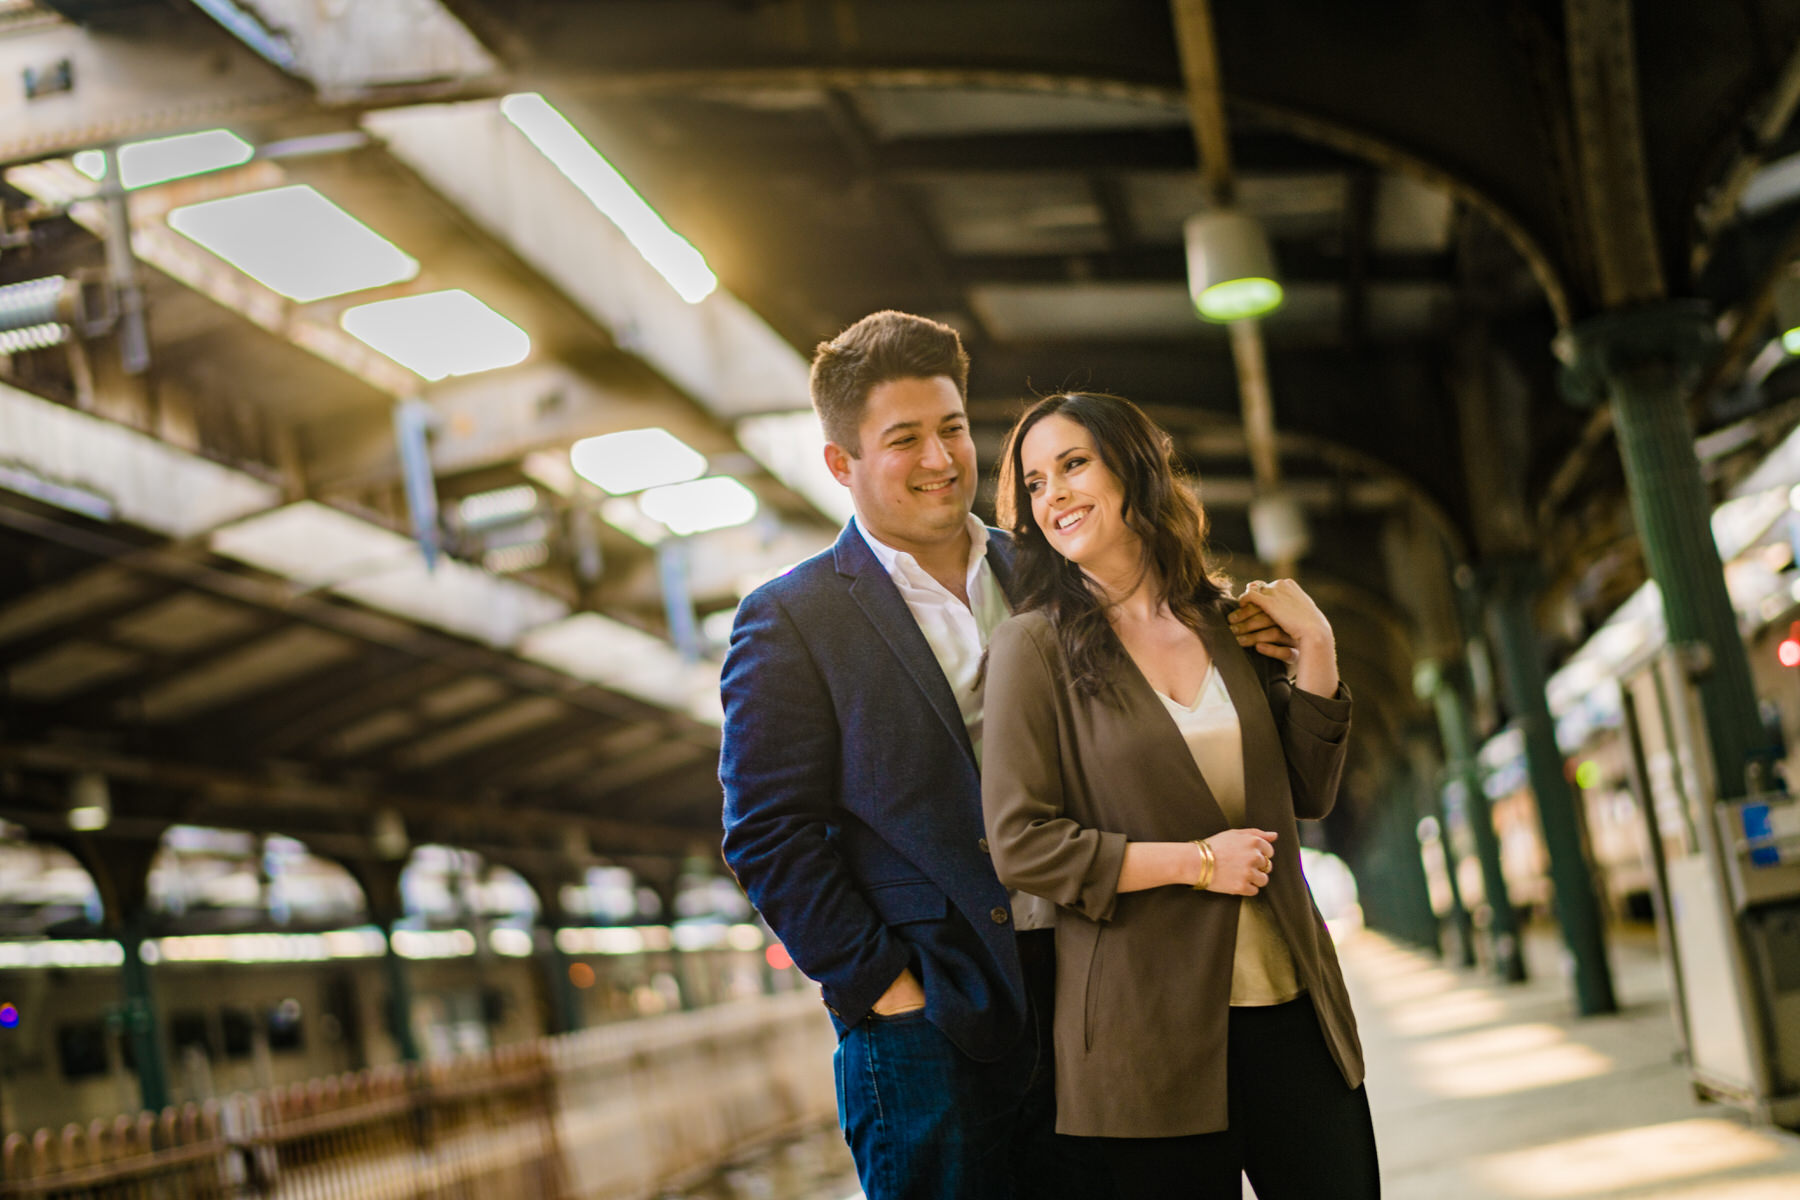 hoboken terminal engagement photos in New York City or Hoboken New Jersey by Washington DC Wedding Photographer Adam Mason